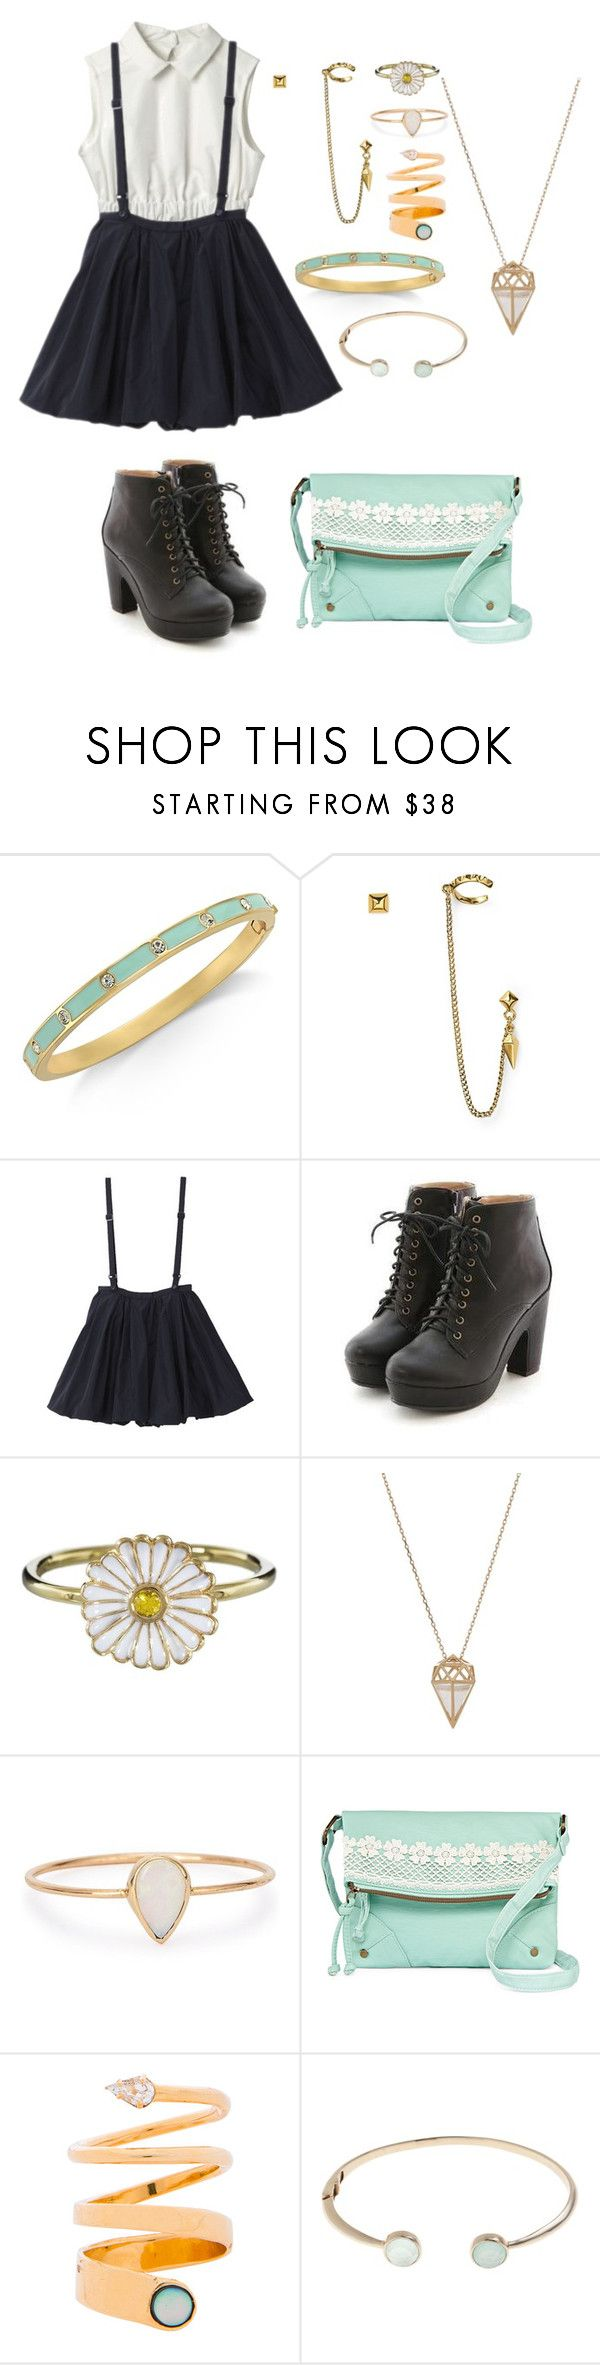 """Untitled #259"" by godlover-11 ❤ liked on Polyvore featuring Kate Spade, Diane Von Furstenberg, Miss Dora, Alison Lou, Noor Fares, Catbird and T-shirt & Jeans"